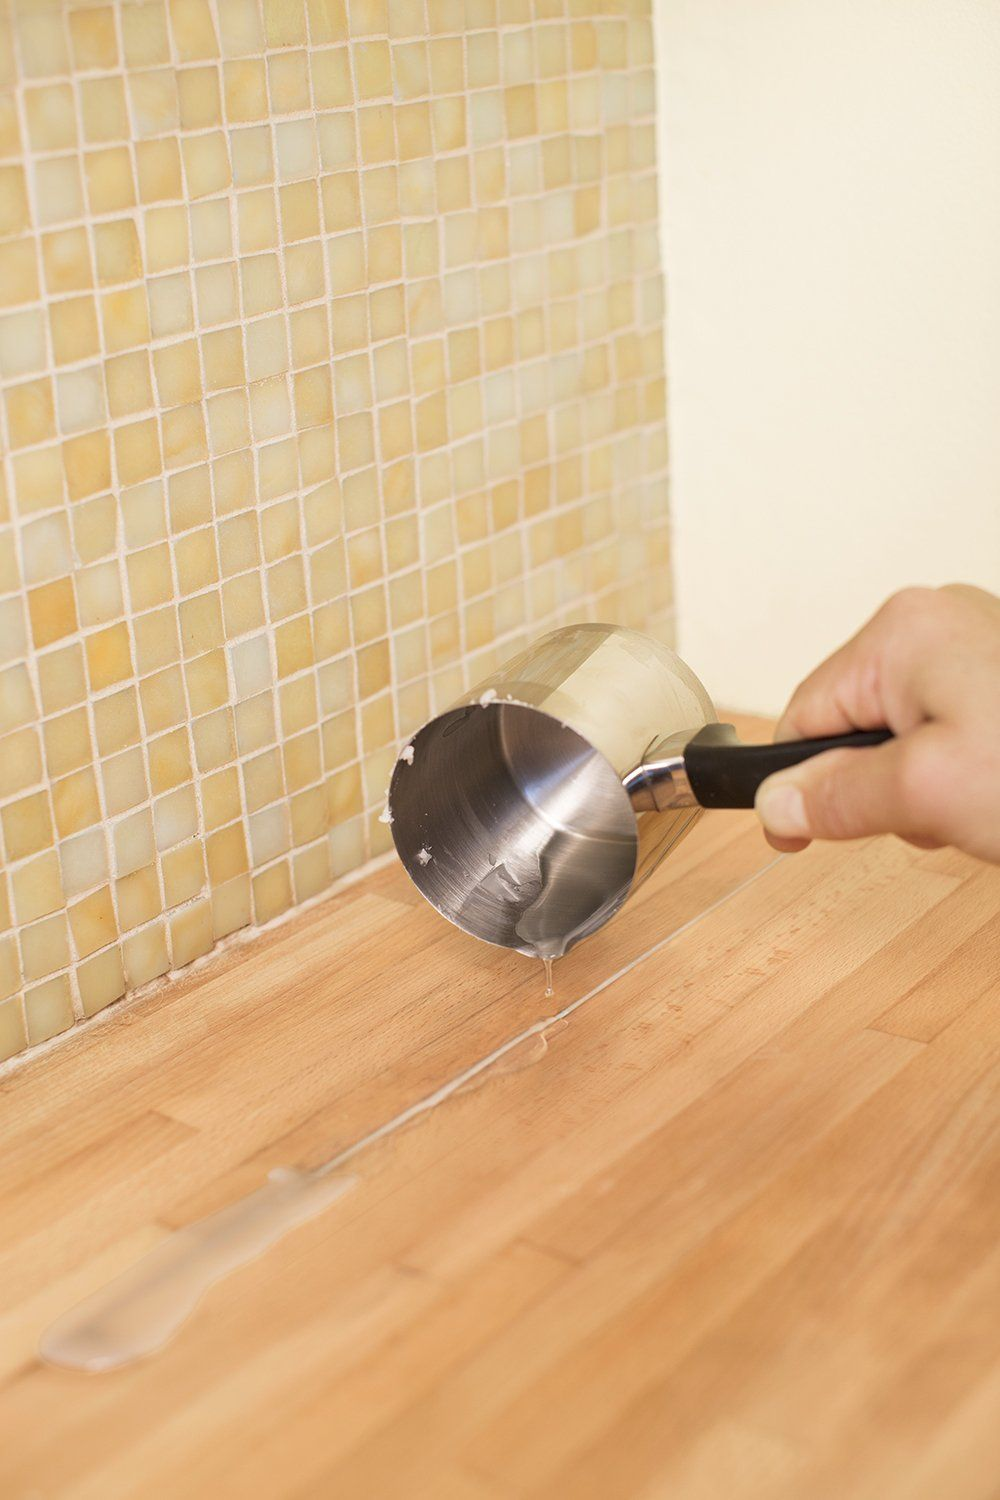 Use Melted Canning Wax To Fill S Or Separations In Wood Countertops And Se Off Excess Before Sealing With A Finish